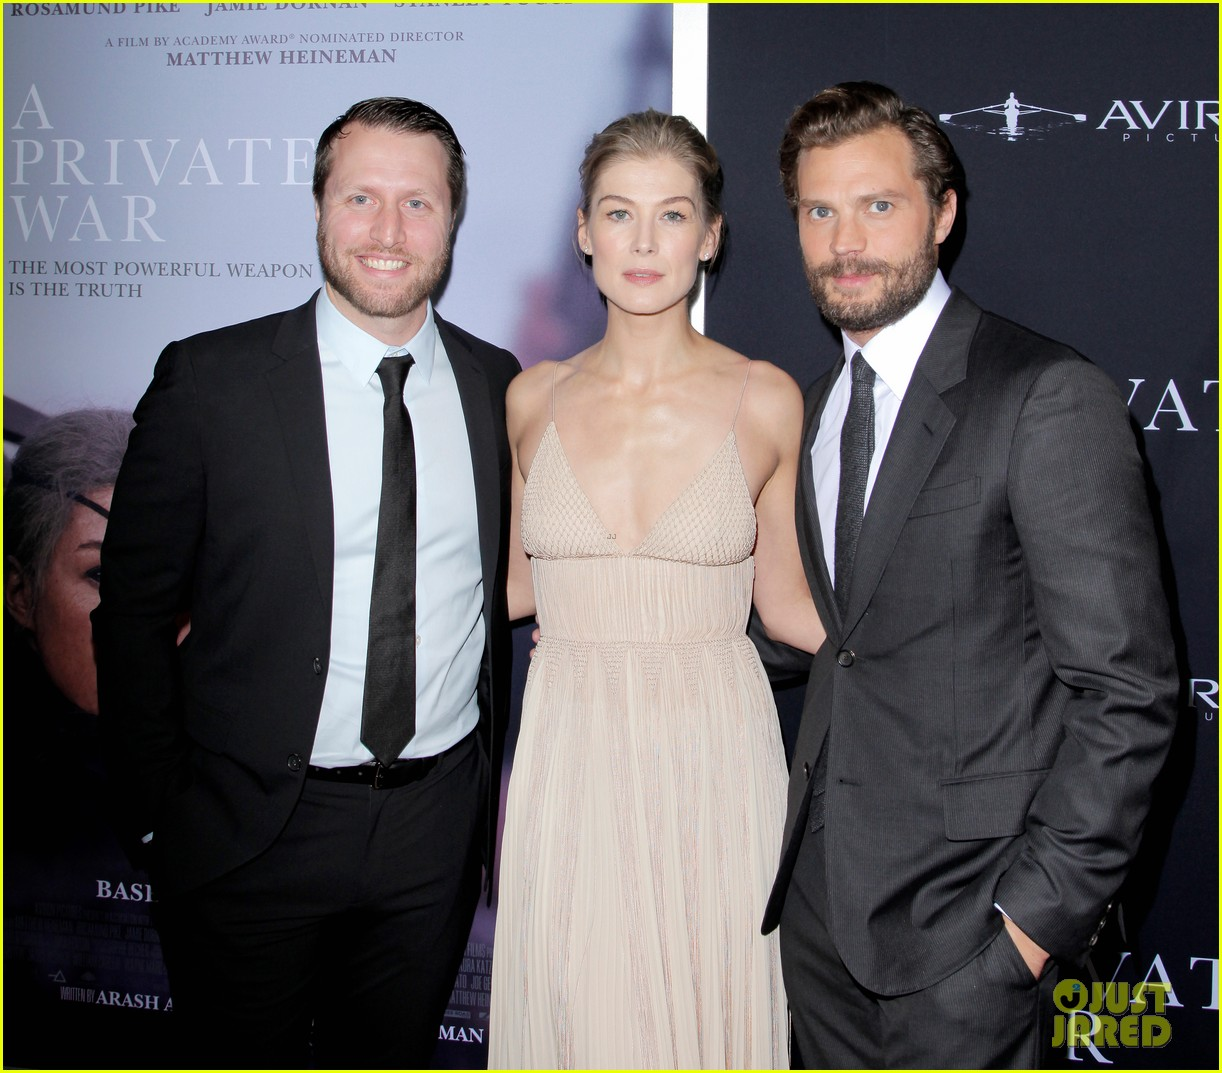 jamie dornan rosamund pike step out for a private war los angeles premiere 16